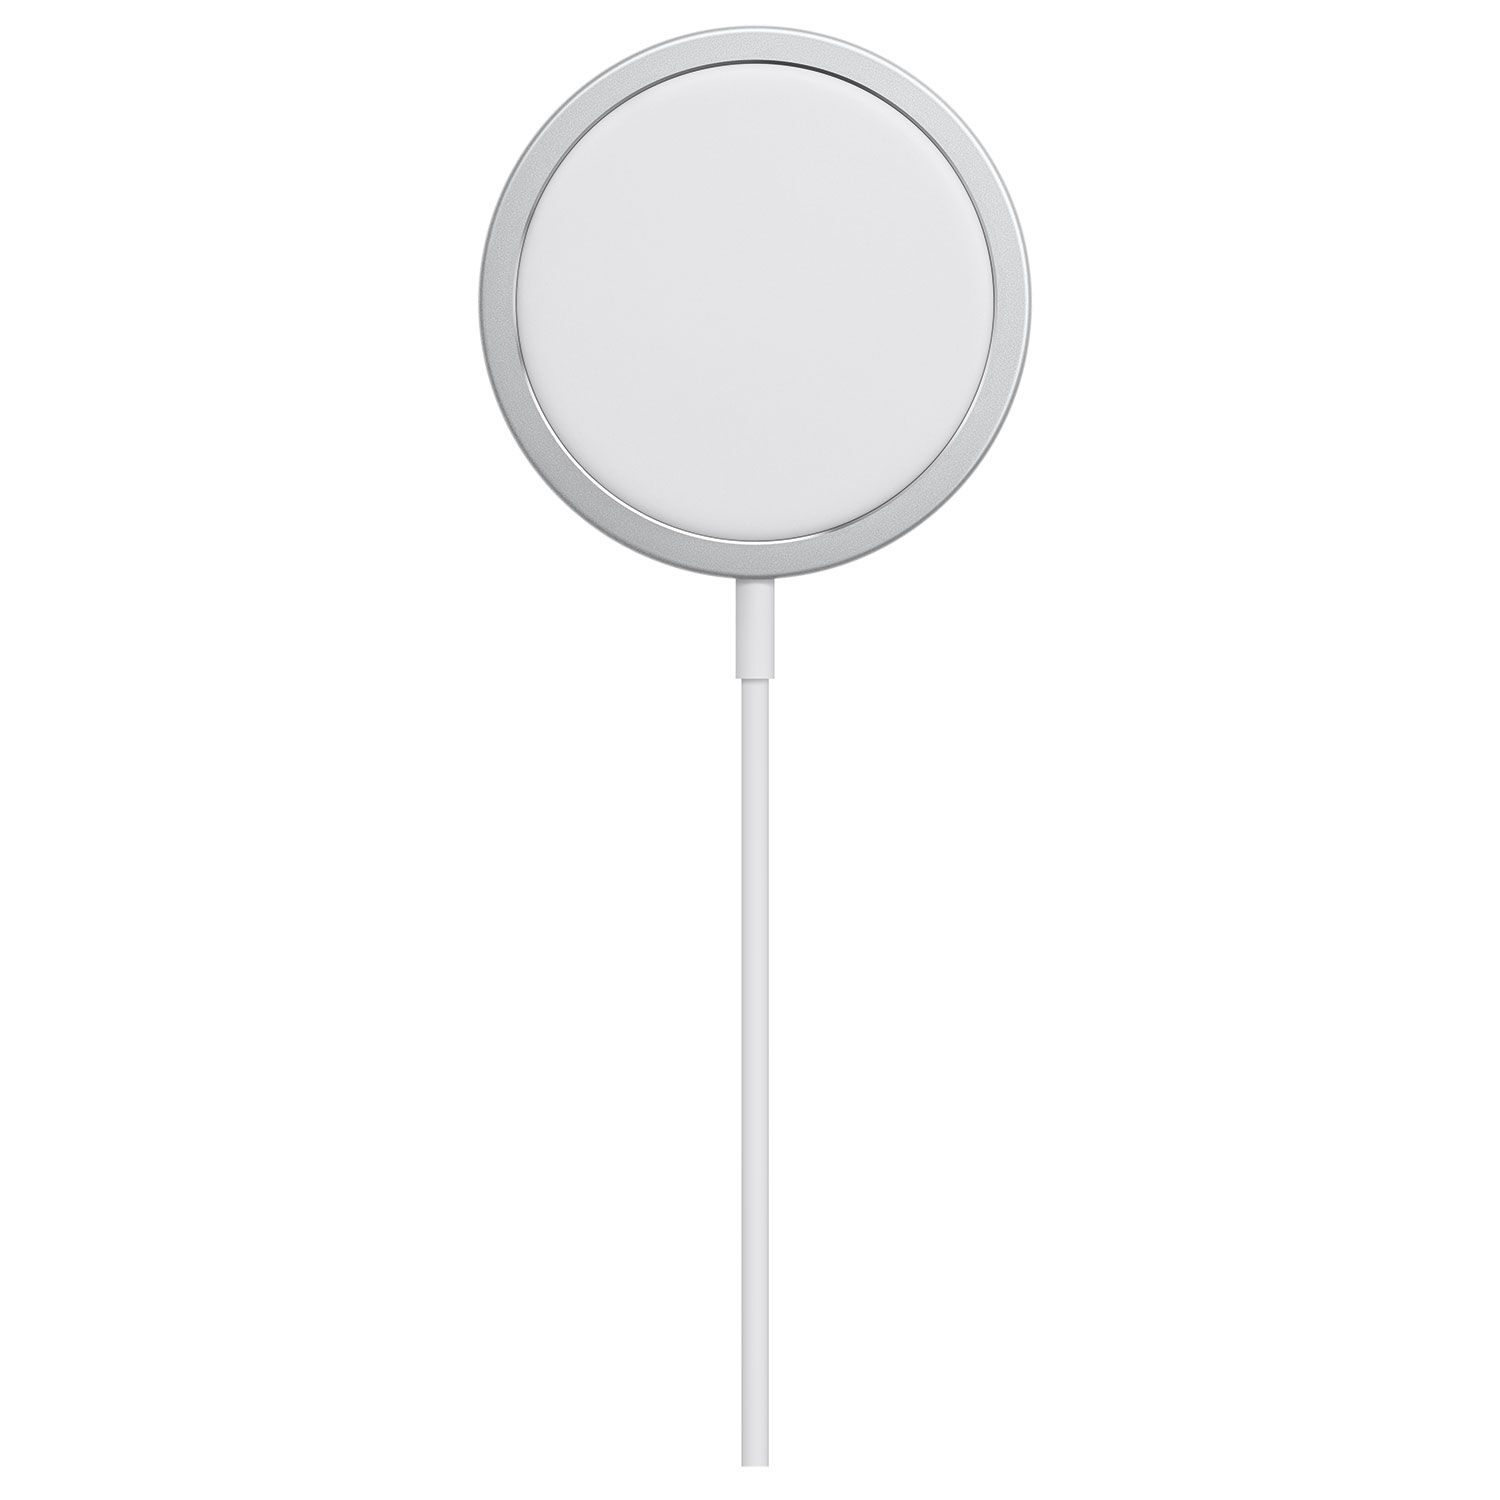 Apple MagSafe Qi Wireless Charging Pad (MHXH3ZM/A)